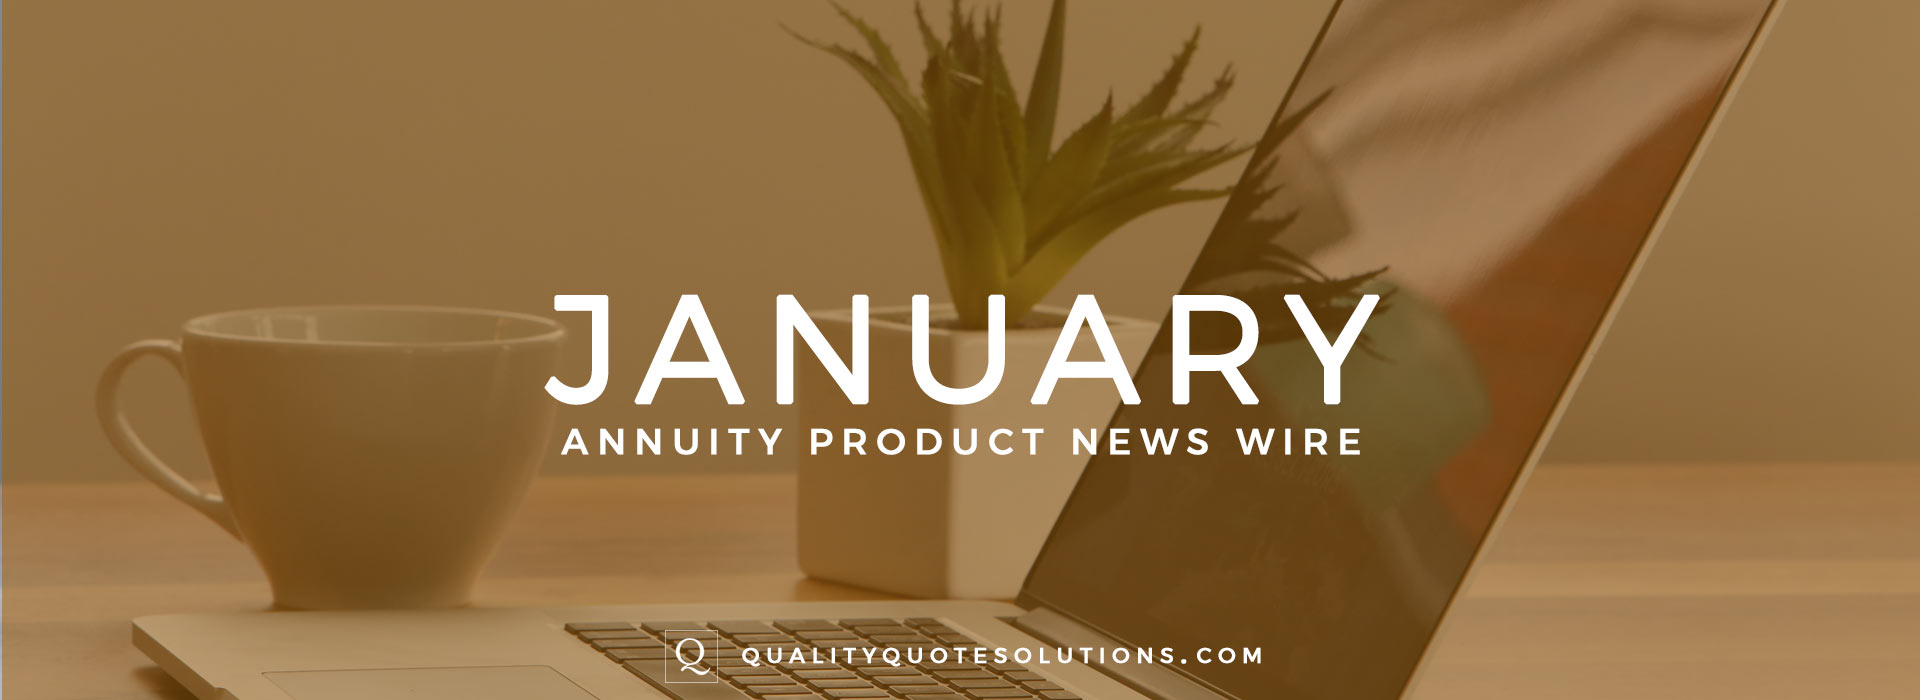 Annuity Quotes Annuity Product News Archives  Quality Quote Insurance Solutions